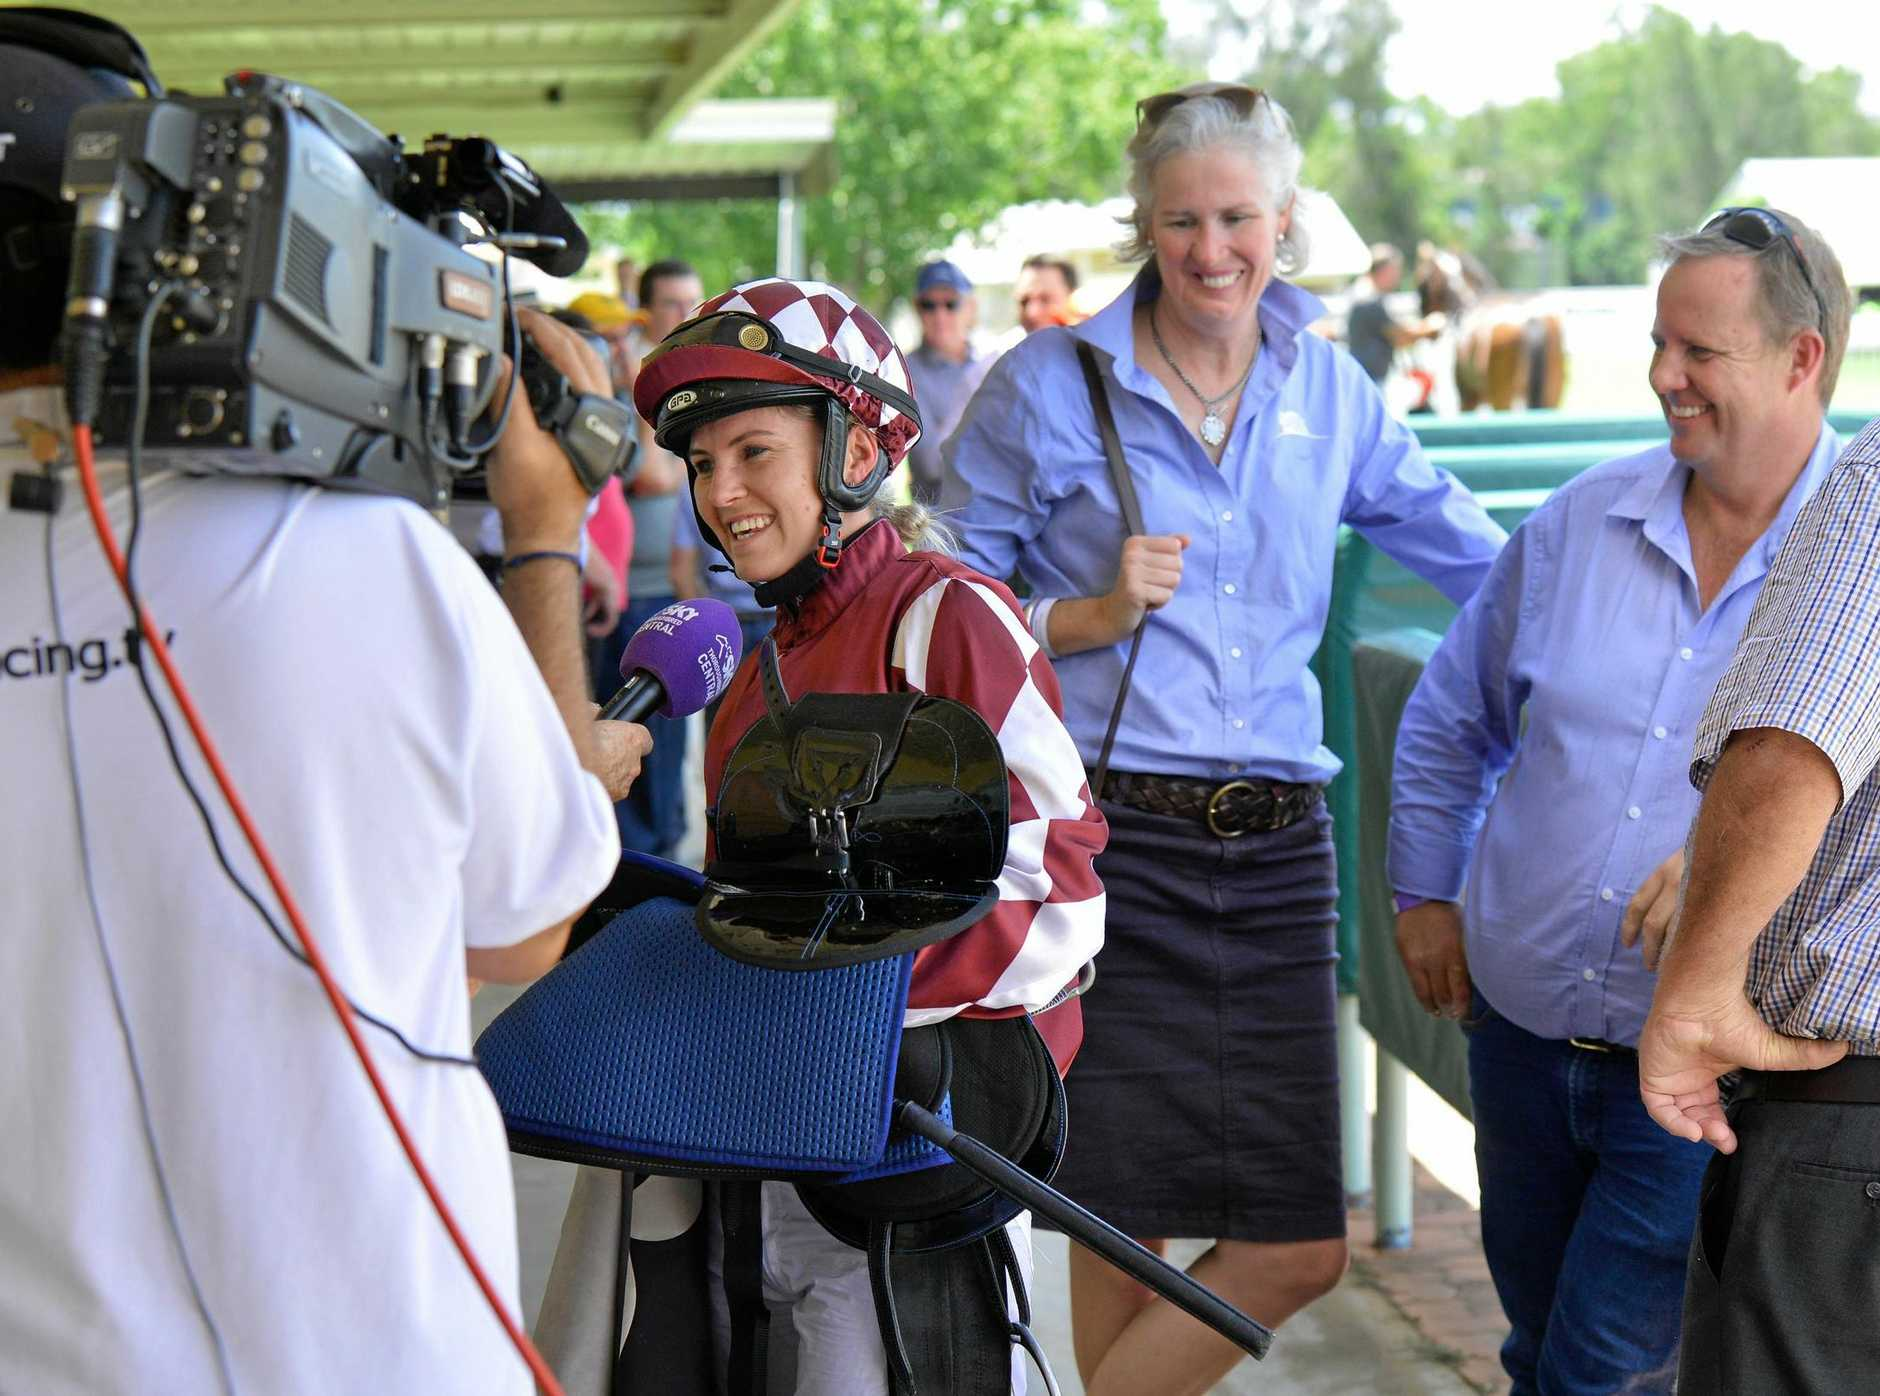 HAPPY MOMENT: Jockey Emma Ljung is the centre of attention after riding Aileach to victory in Ipswich.